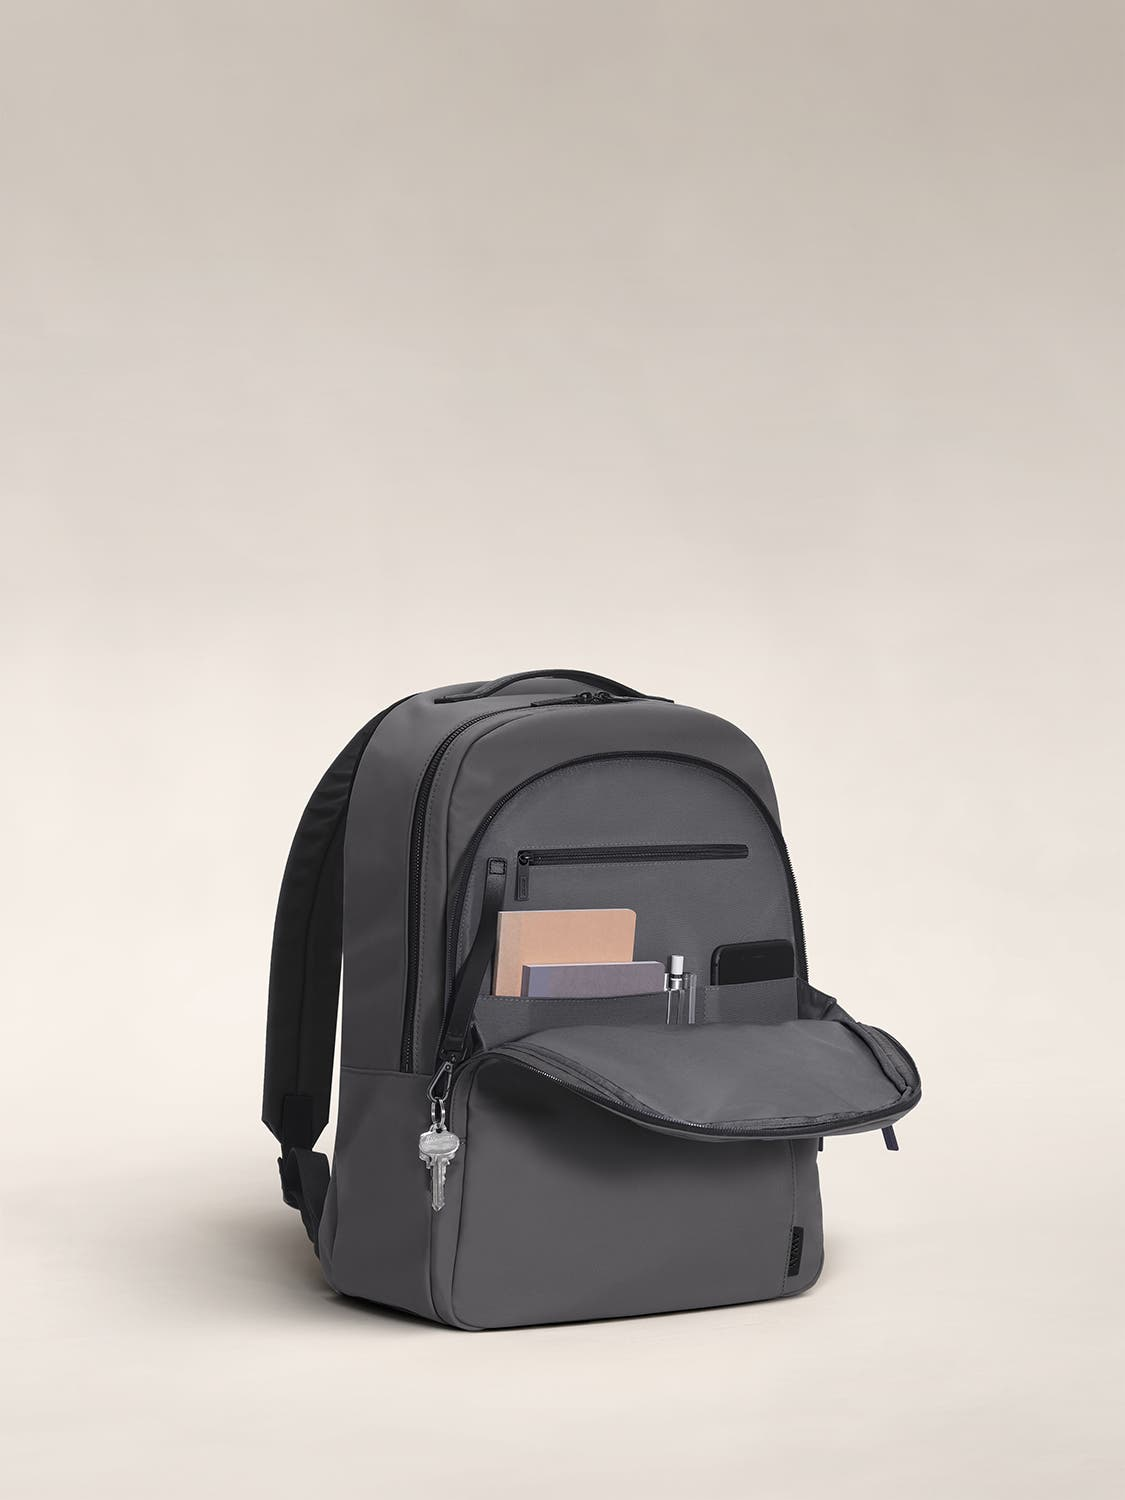 Open front flap of an asphalt backpack with organized pockets shown with notebooks.